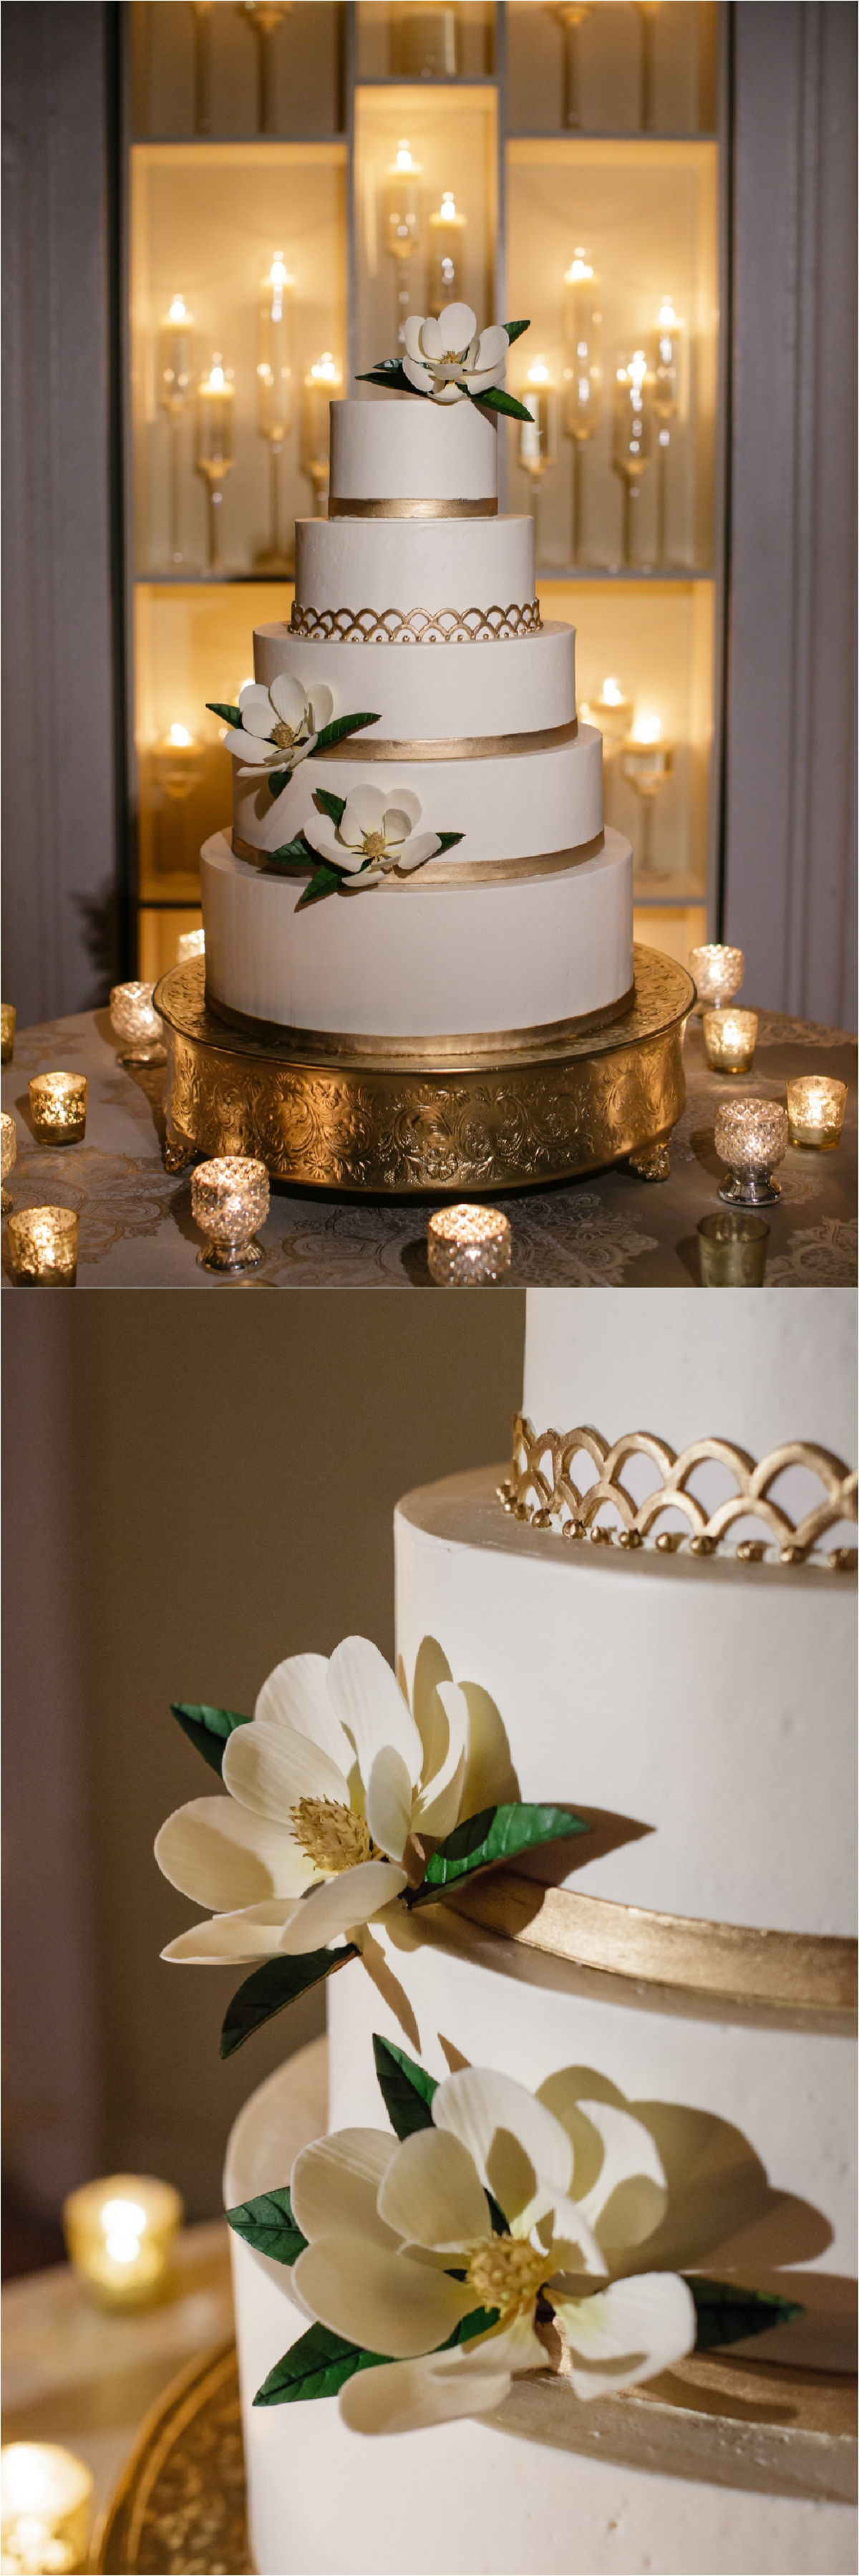 detail shots of white and gold wedding cake with magnolia flower details in front of a wall of candle light